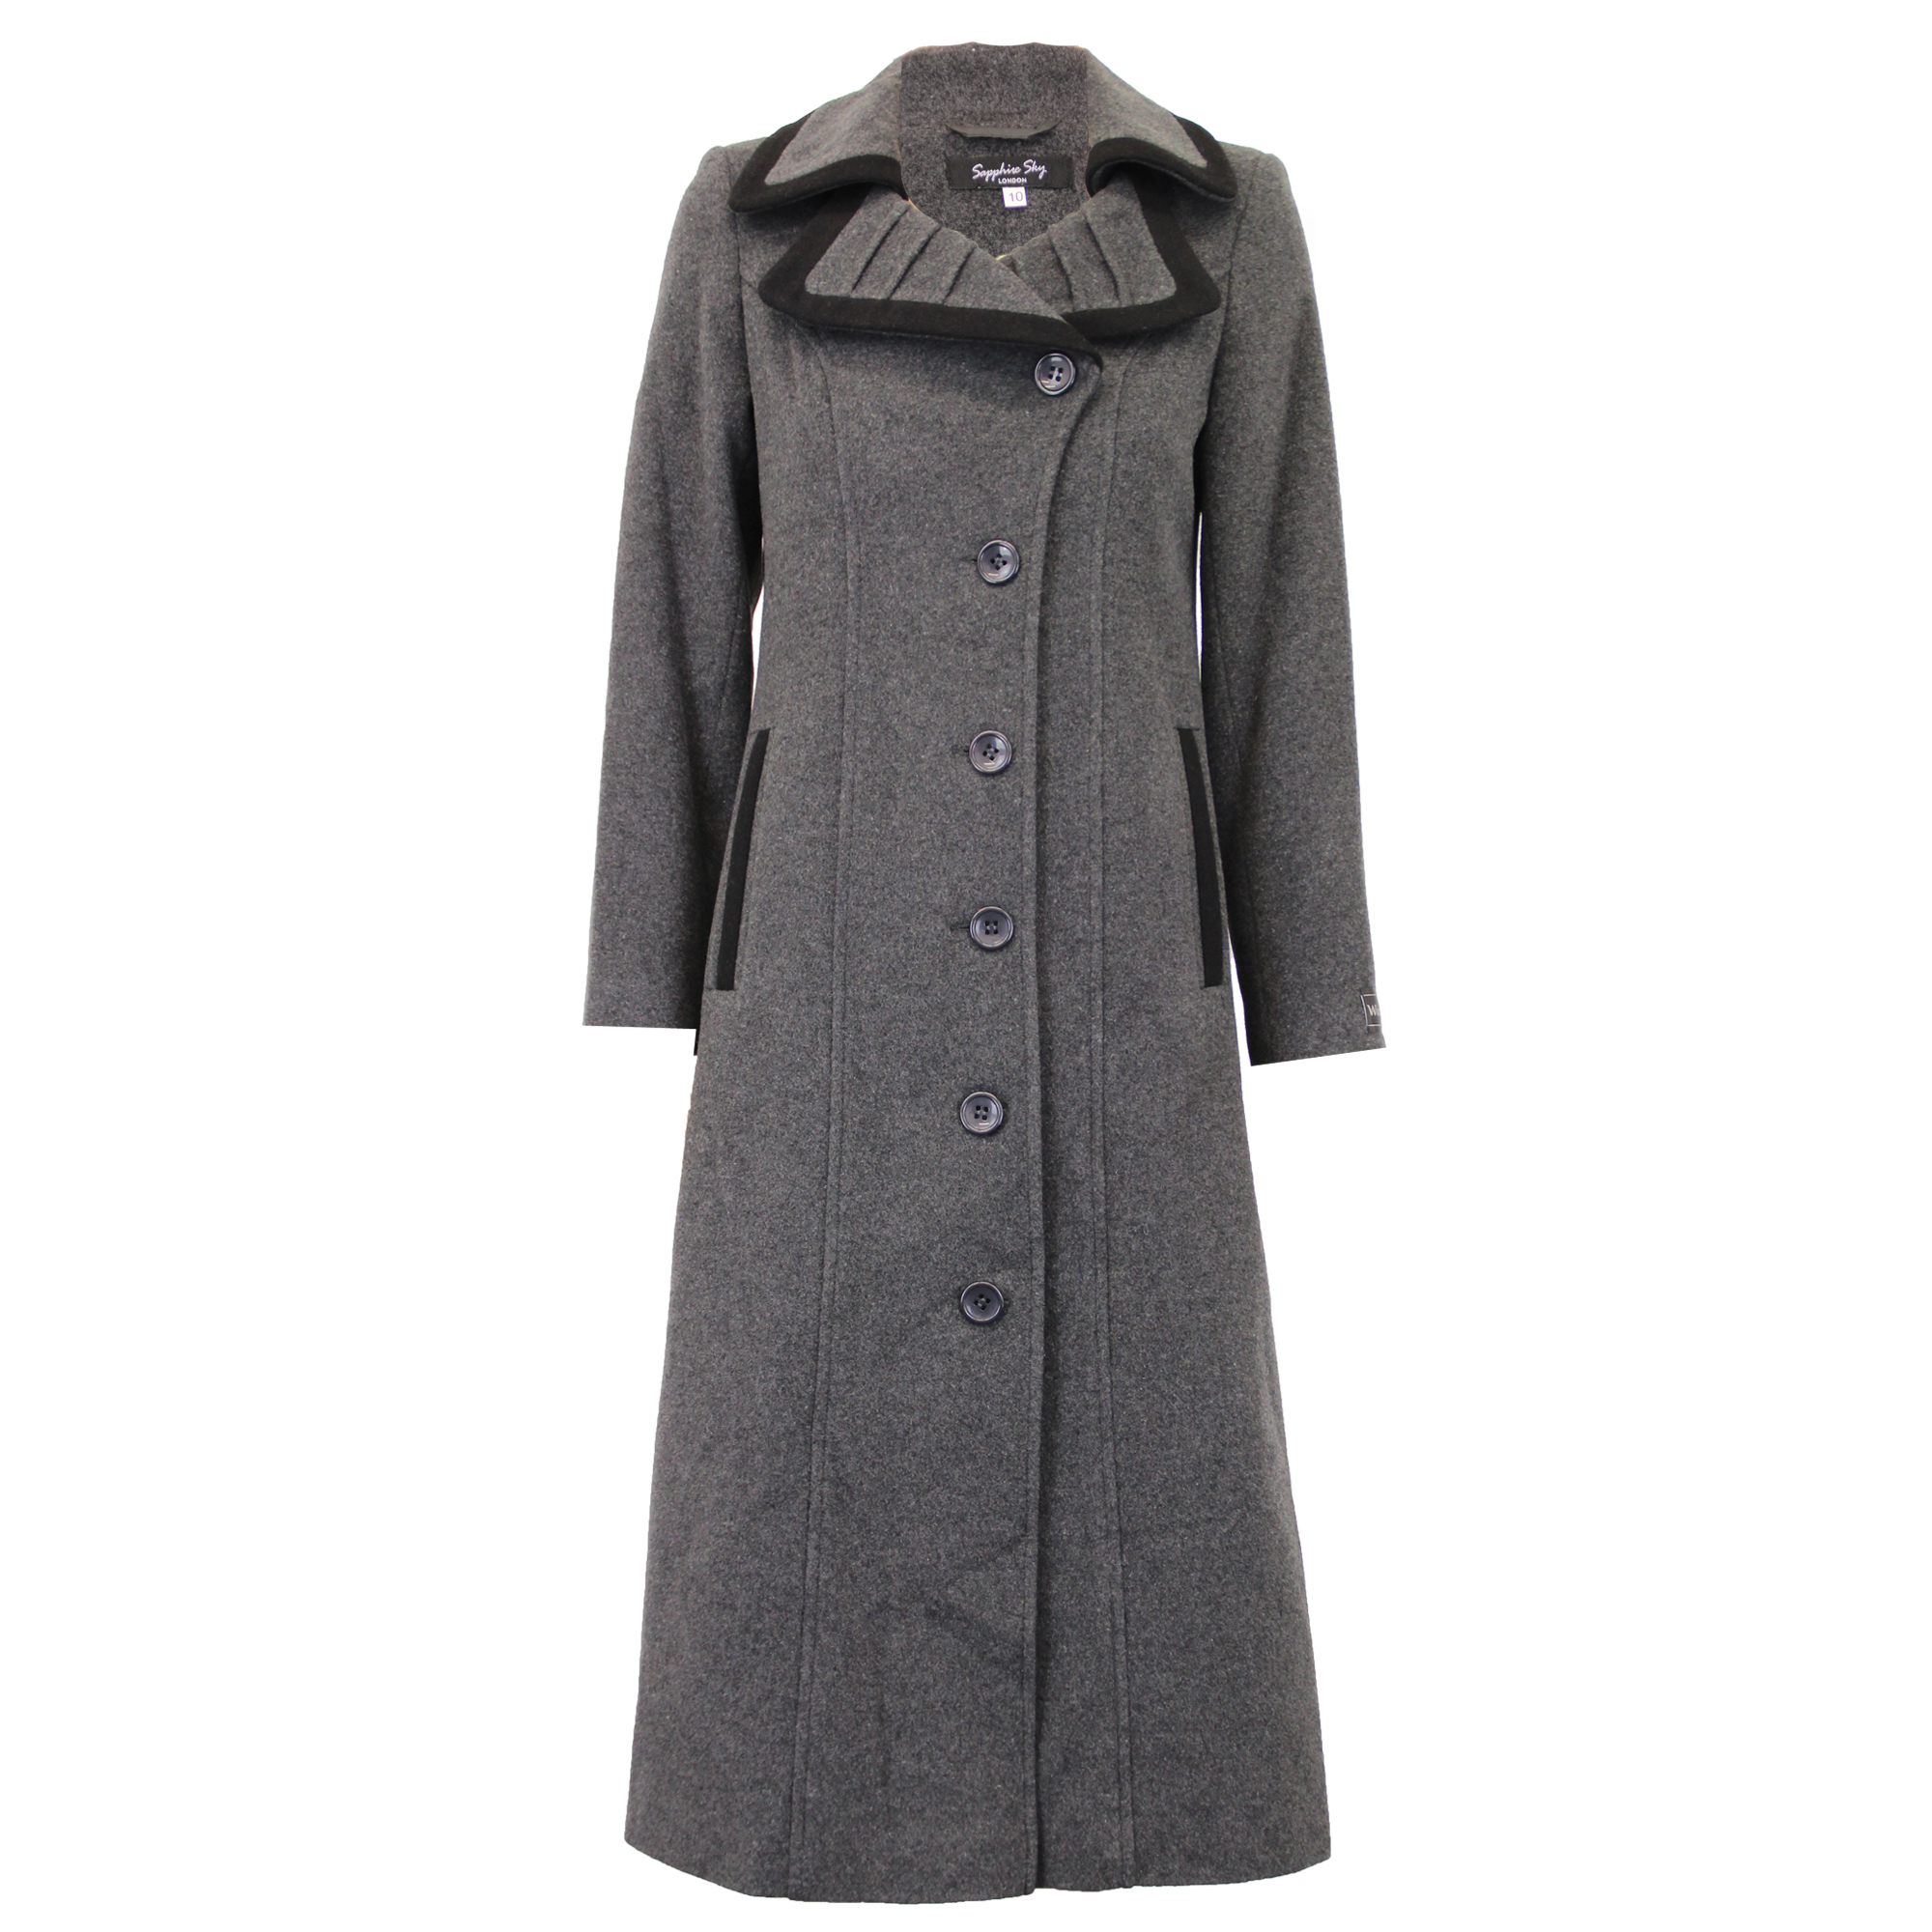 Ladies-Wool-Cashmere-Coat-Women-Jacket-Outerwear-Trench-Overcoat-Winter-Lined thumbnail 45